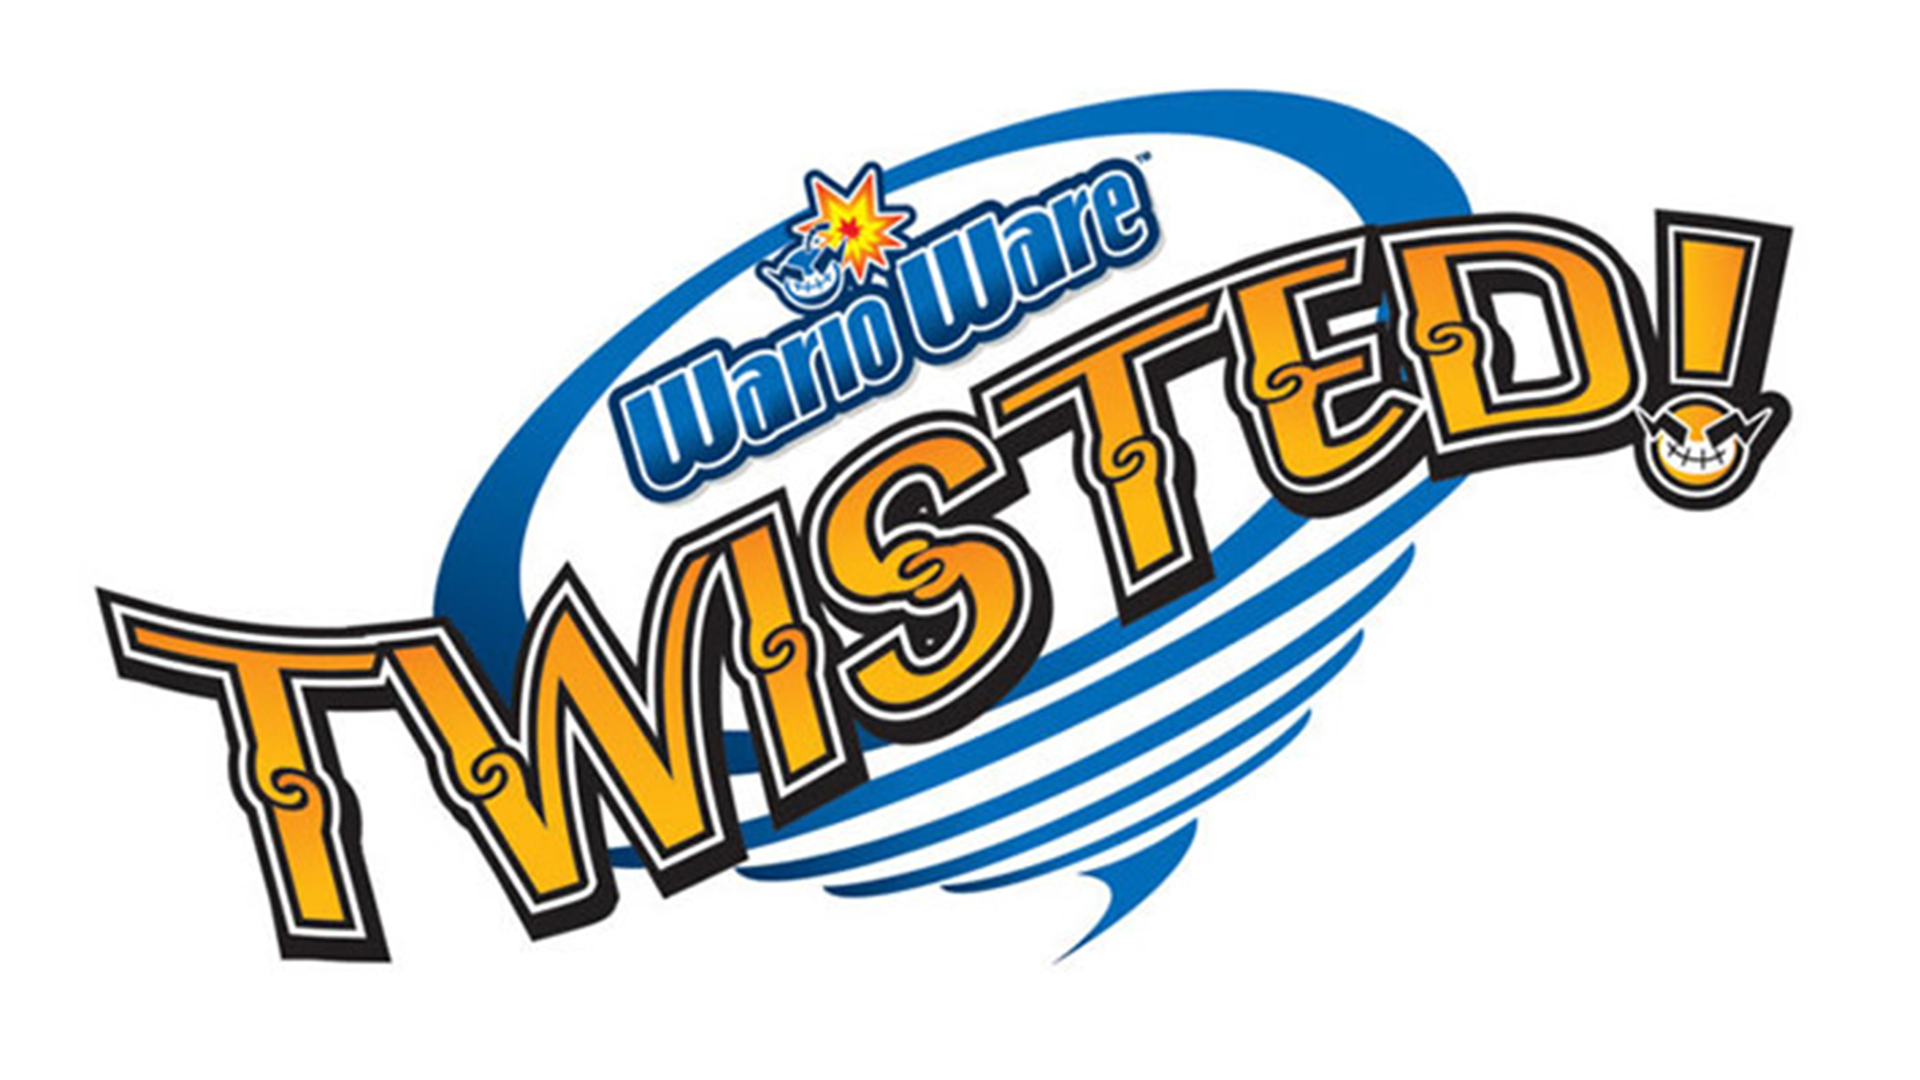 WarioWare: Twisted! Logo